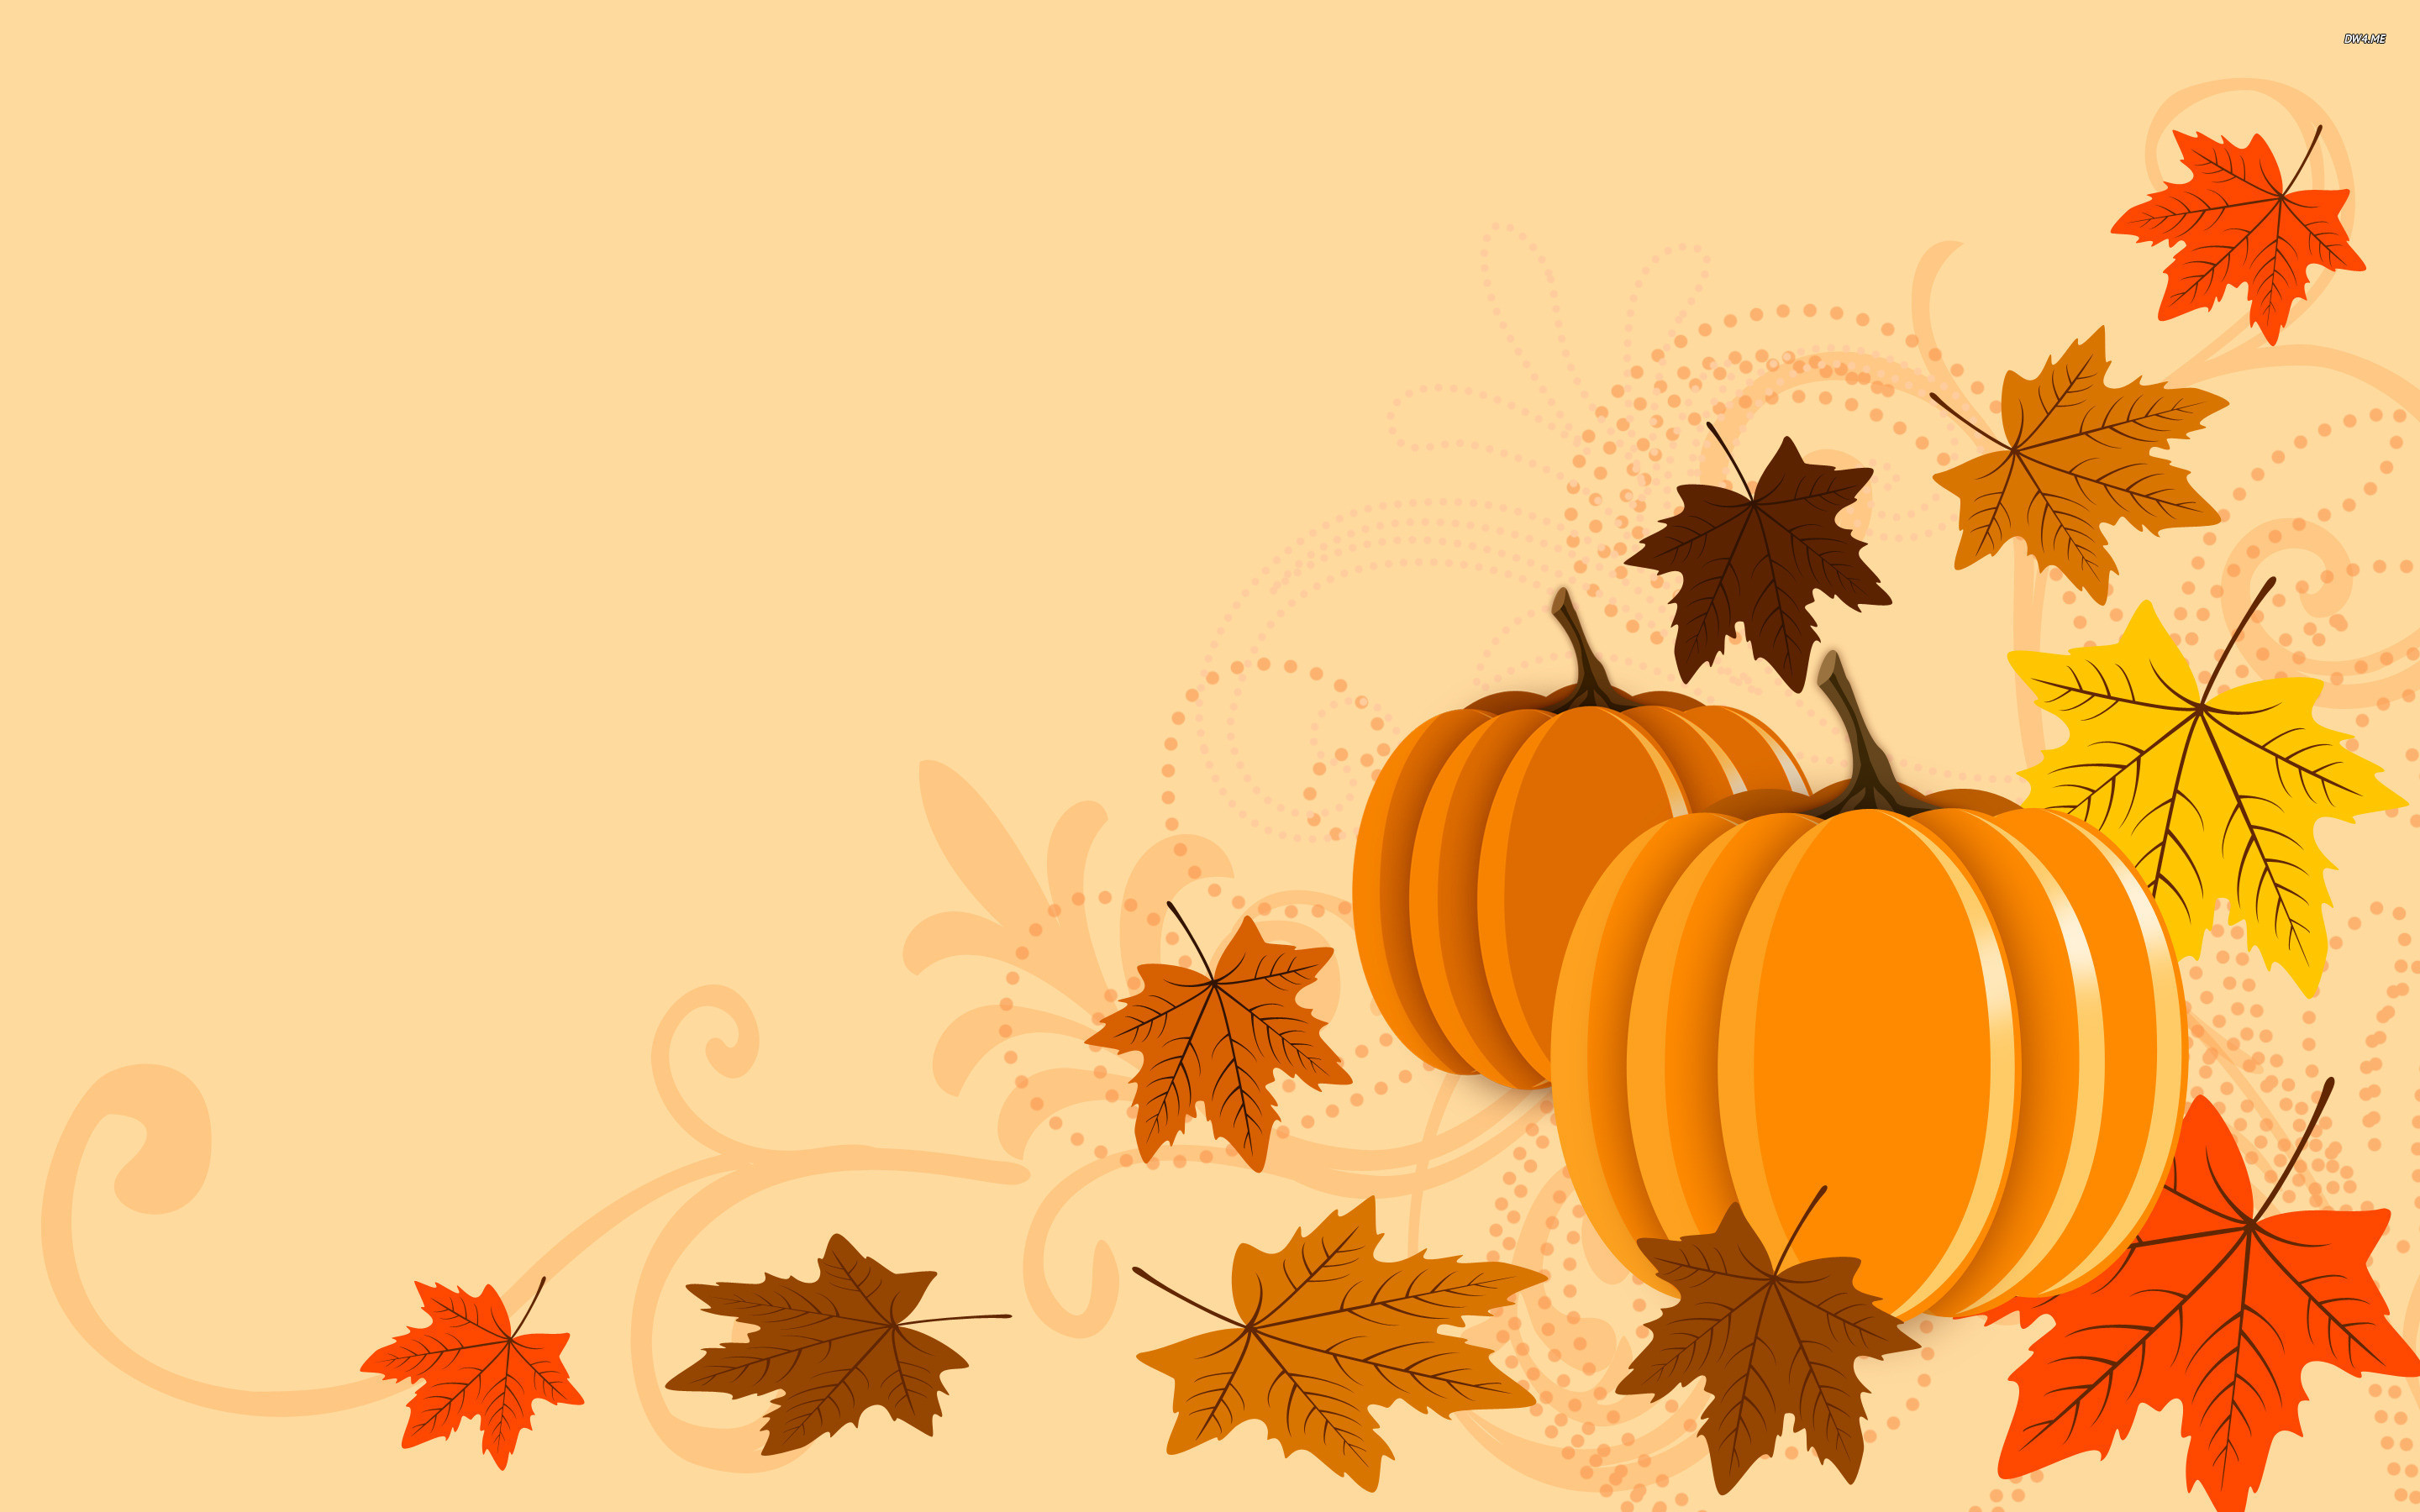 Fall Pumpkin Desktop Wallpaper Free Autumn Pumpkins Desktop Wallpaper 50 Images